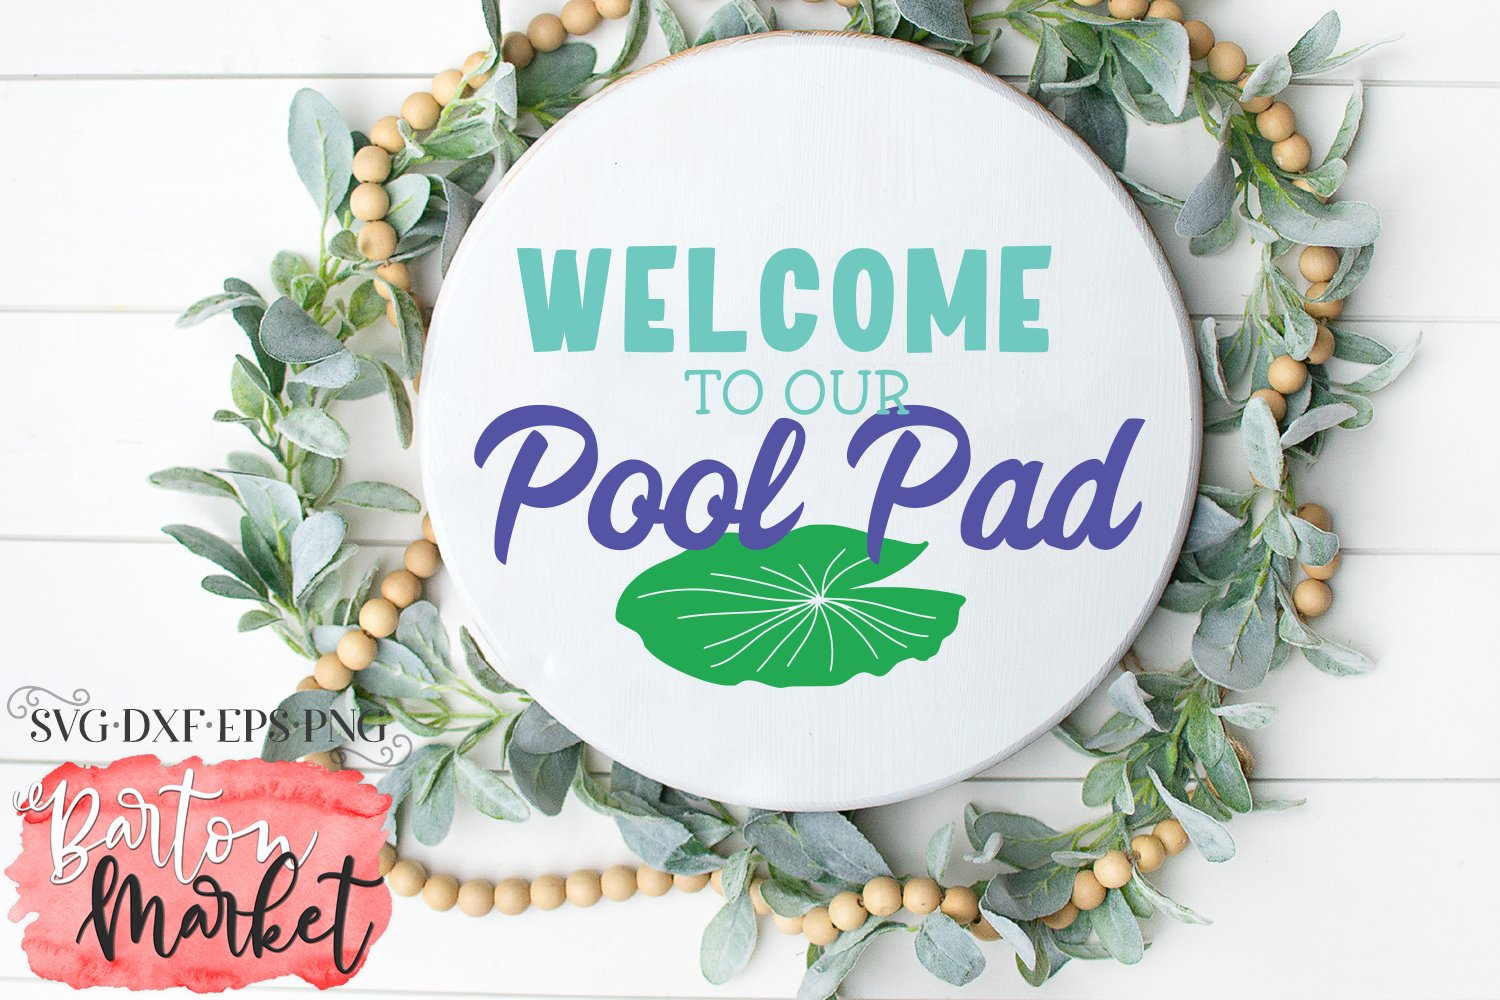 Welcome To Our Pool Pad SVG DXF EPS PNG example image 2